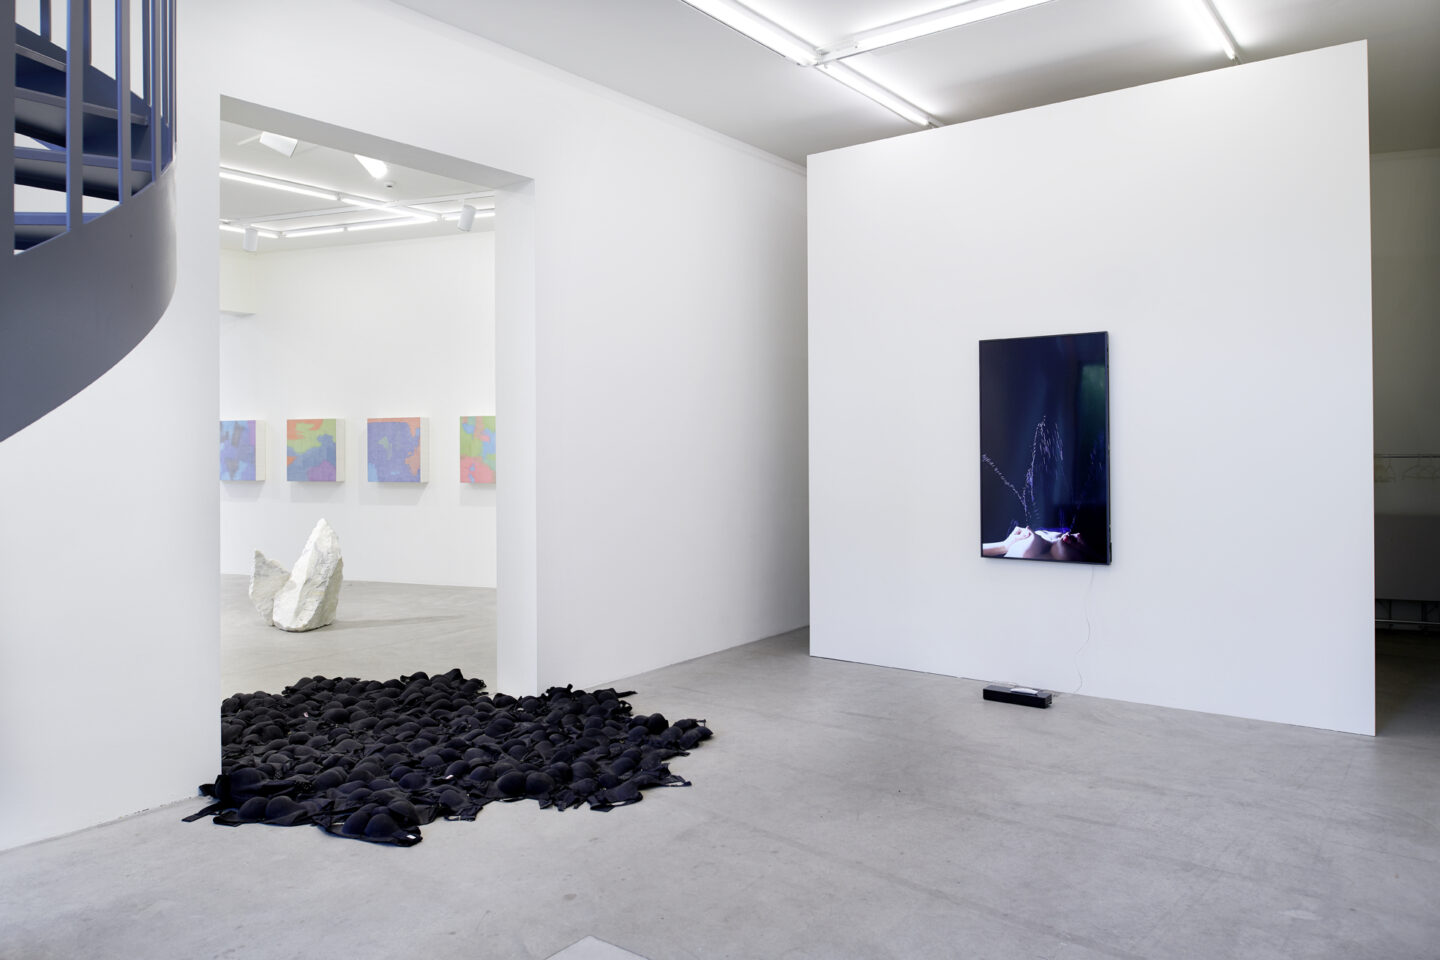 Exhibition View Cao Yu Soloshow «Femme Fatale» at Galerie Urs Meile, Luzern / Courtesy: the artist and Galerie Urs Meile